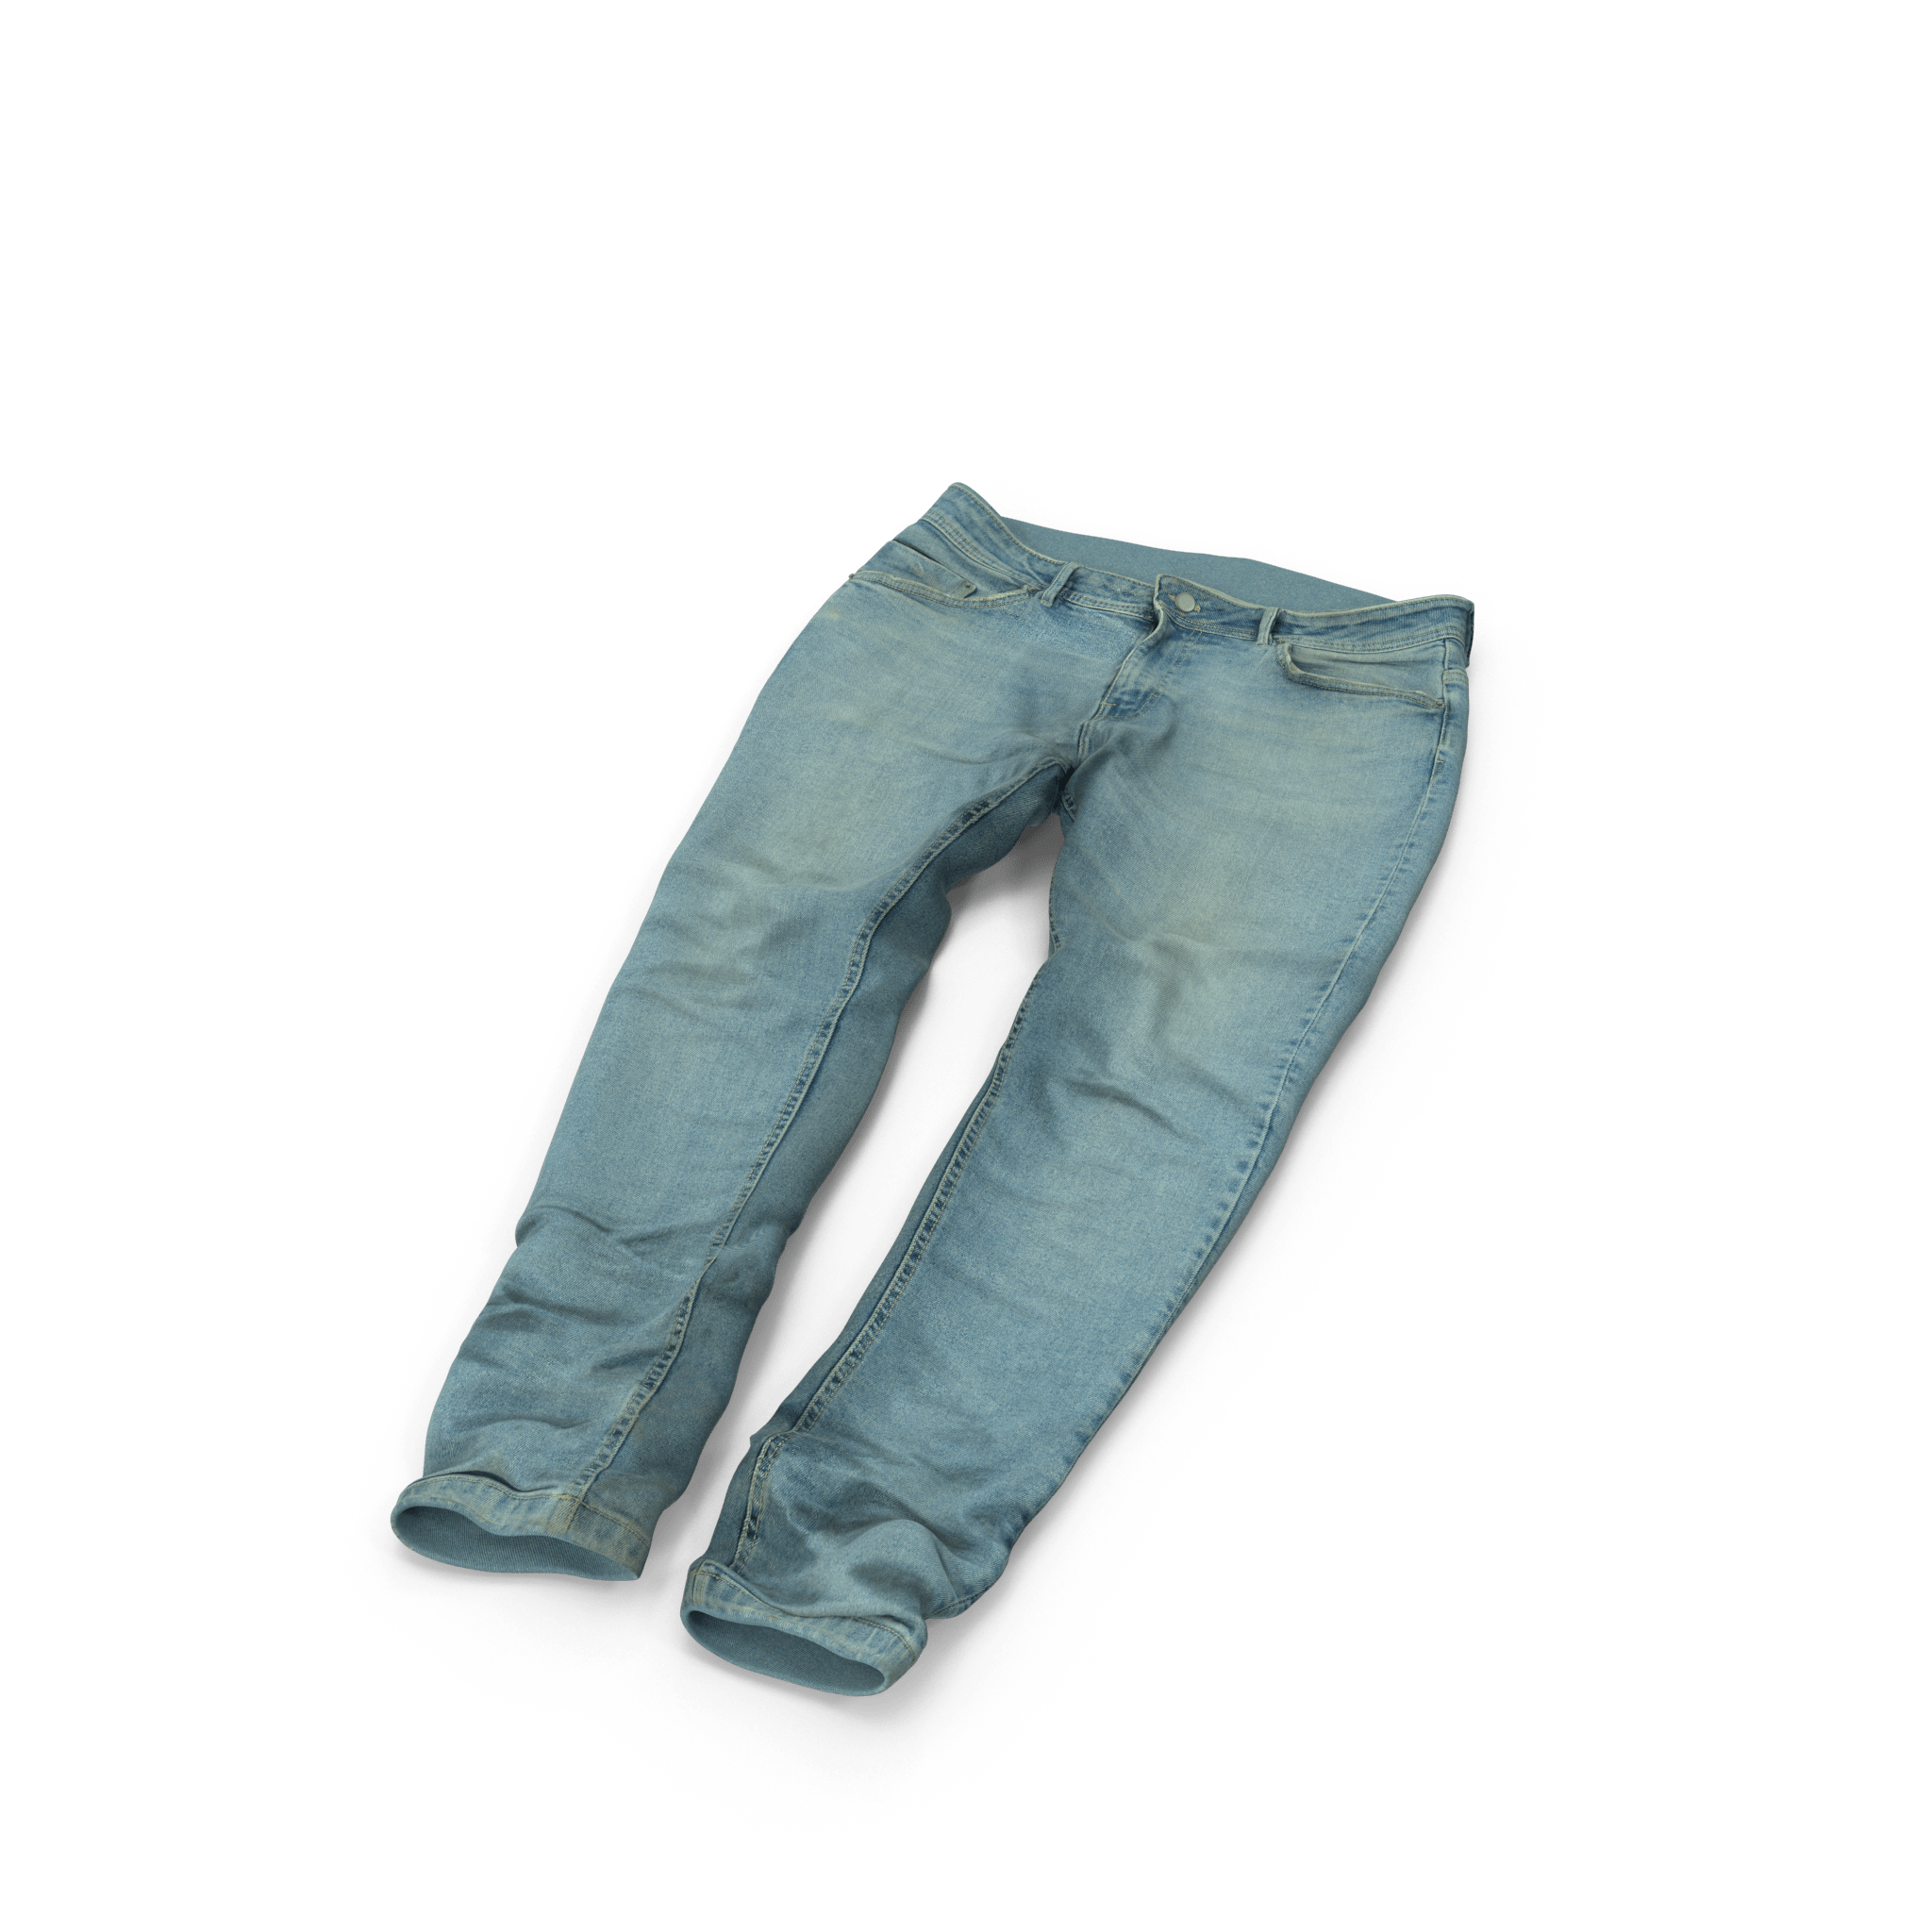 How to invest in Levi's